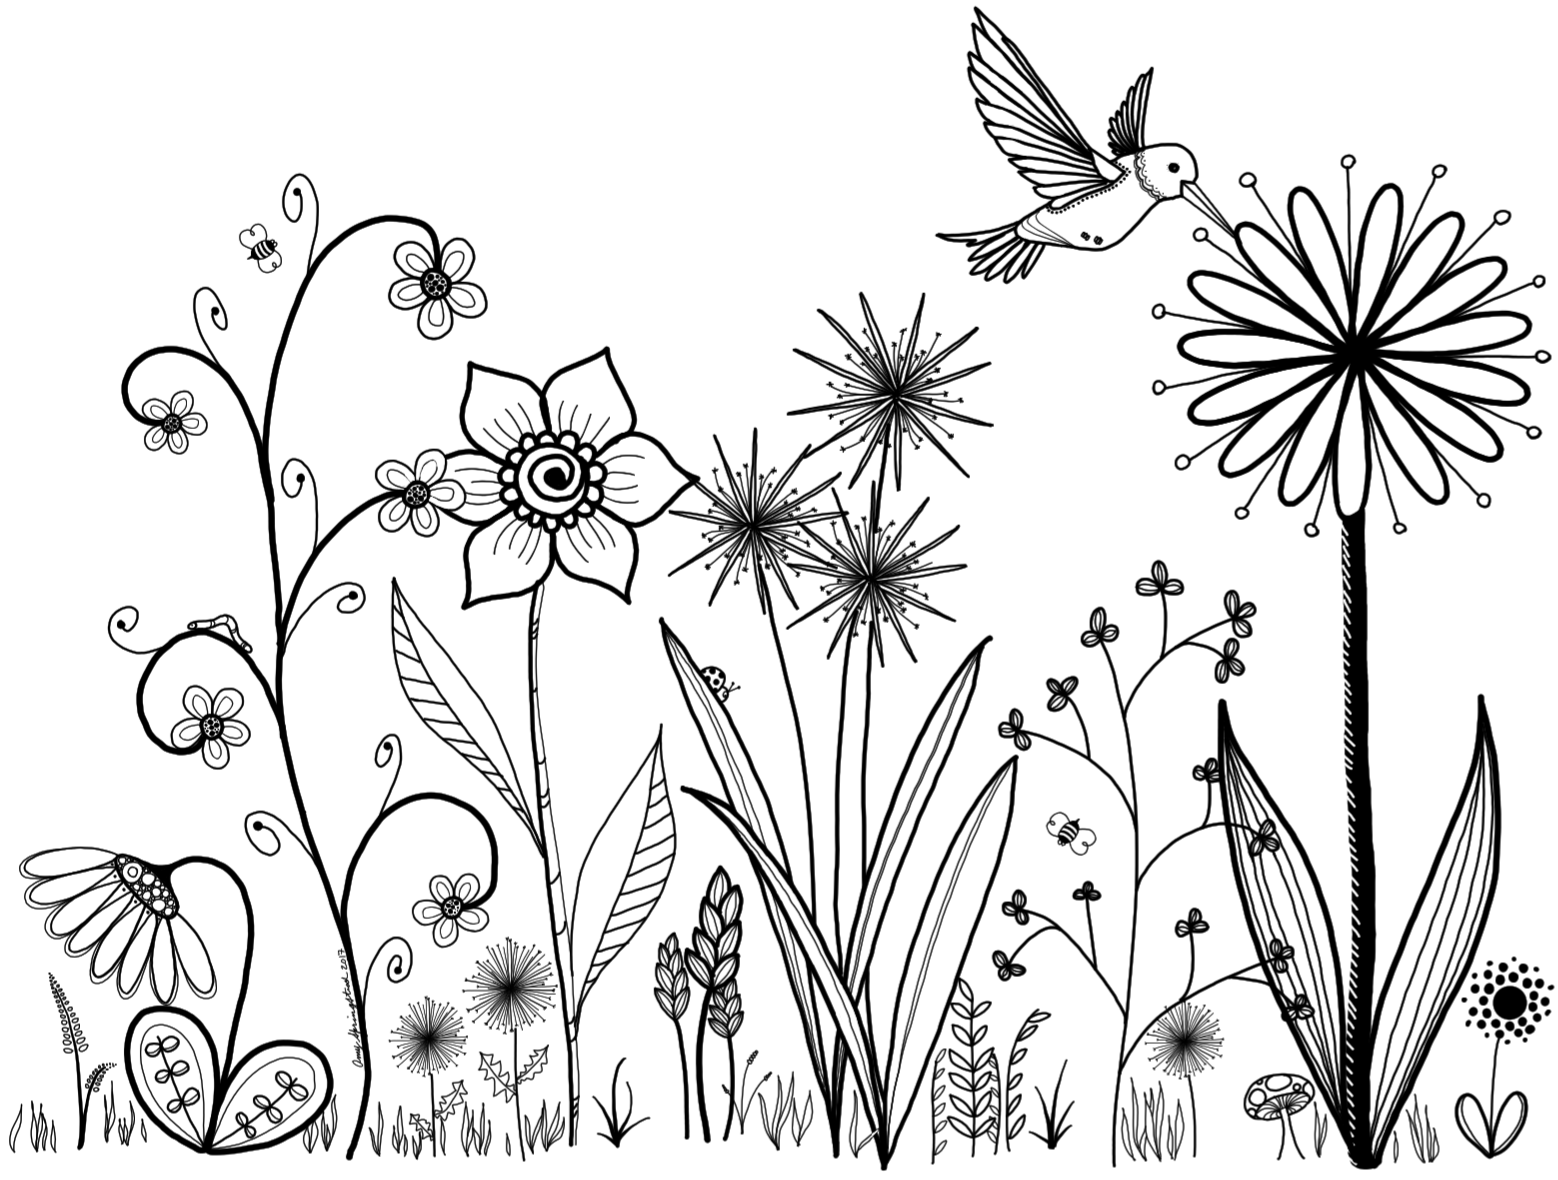 My Original Art Inspired By Many Doodle Flower Line